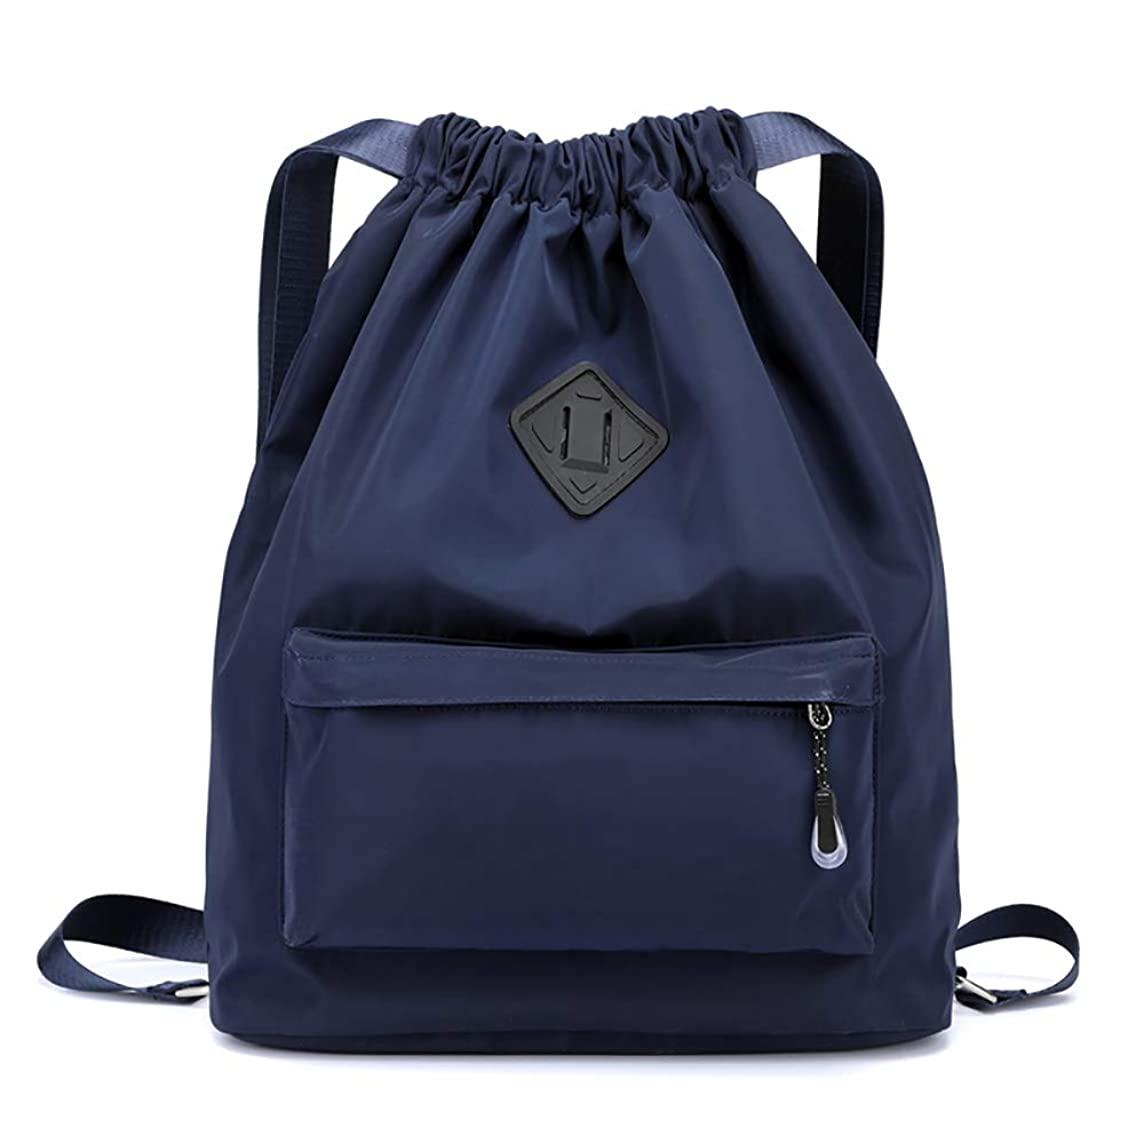 Lightweight Athletic Drawstring Bag Waterproof Sport Workout Pull String Backpack-Navy